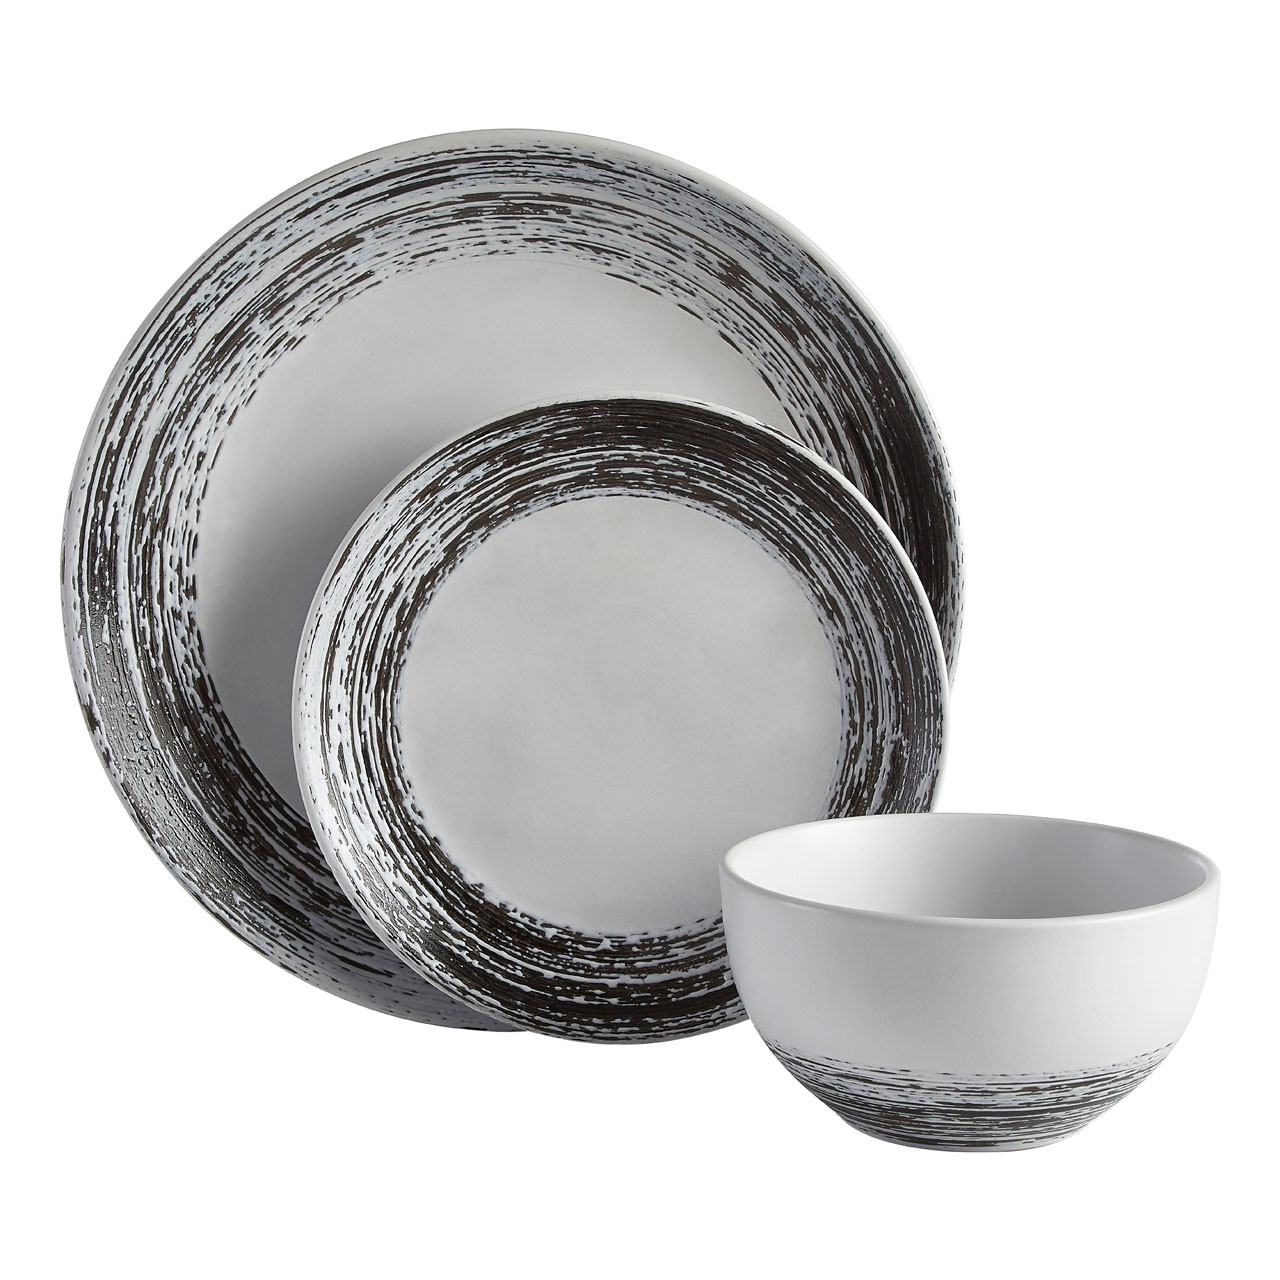 Middag Black And White Dinner Set